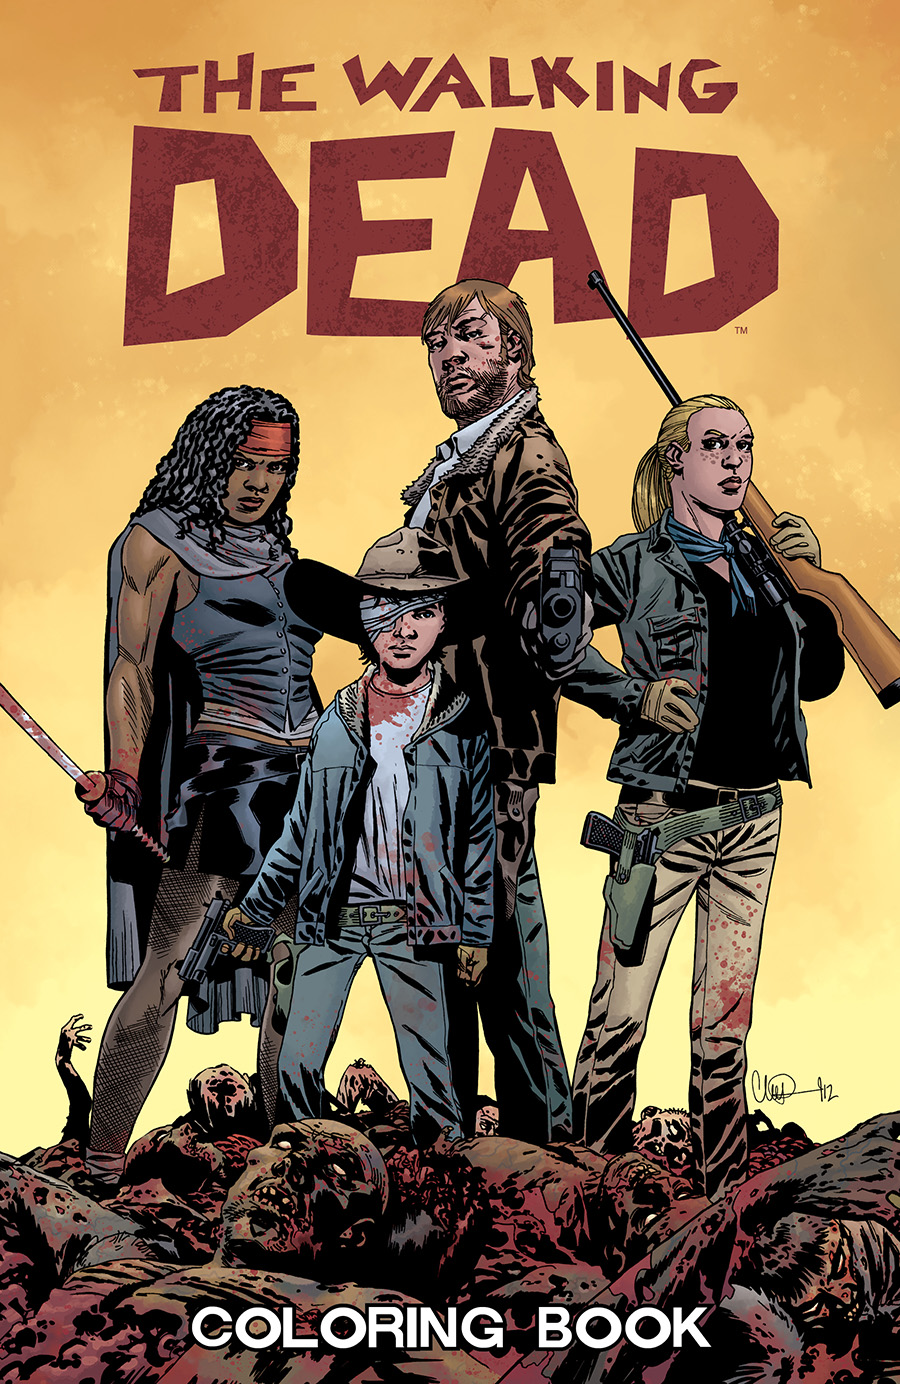 The-Walking-Dead_ColoringBook_cover